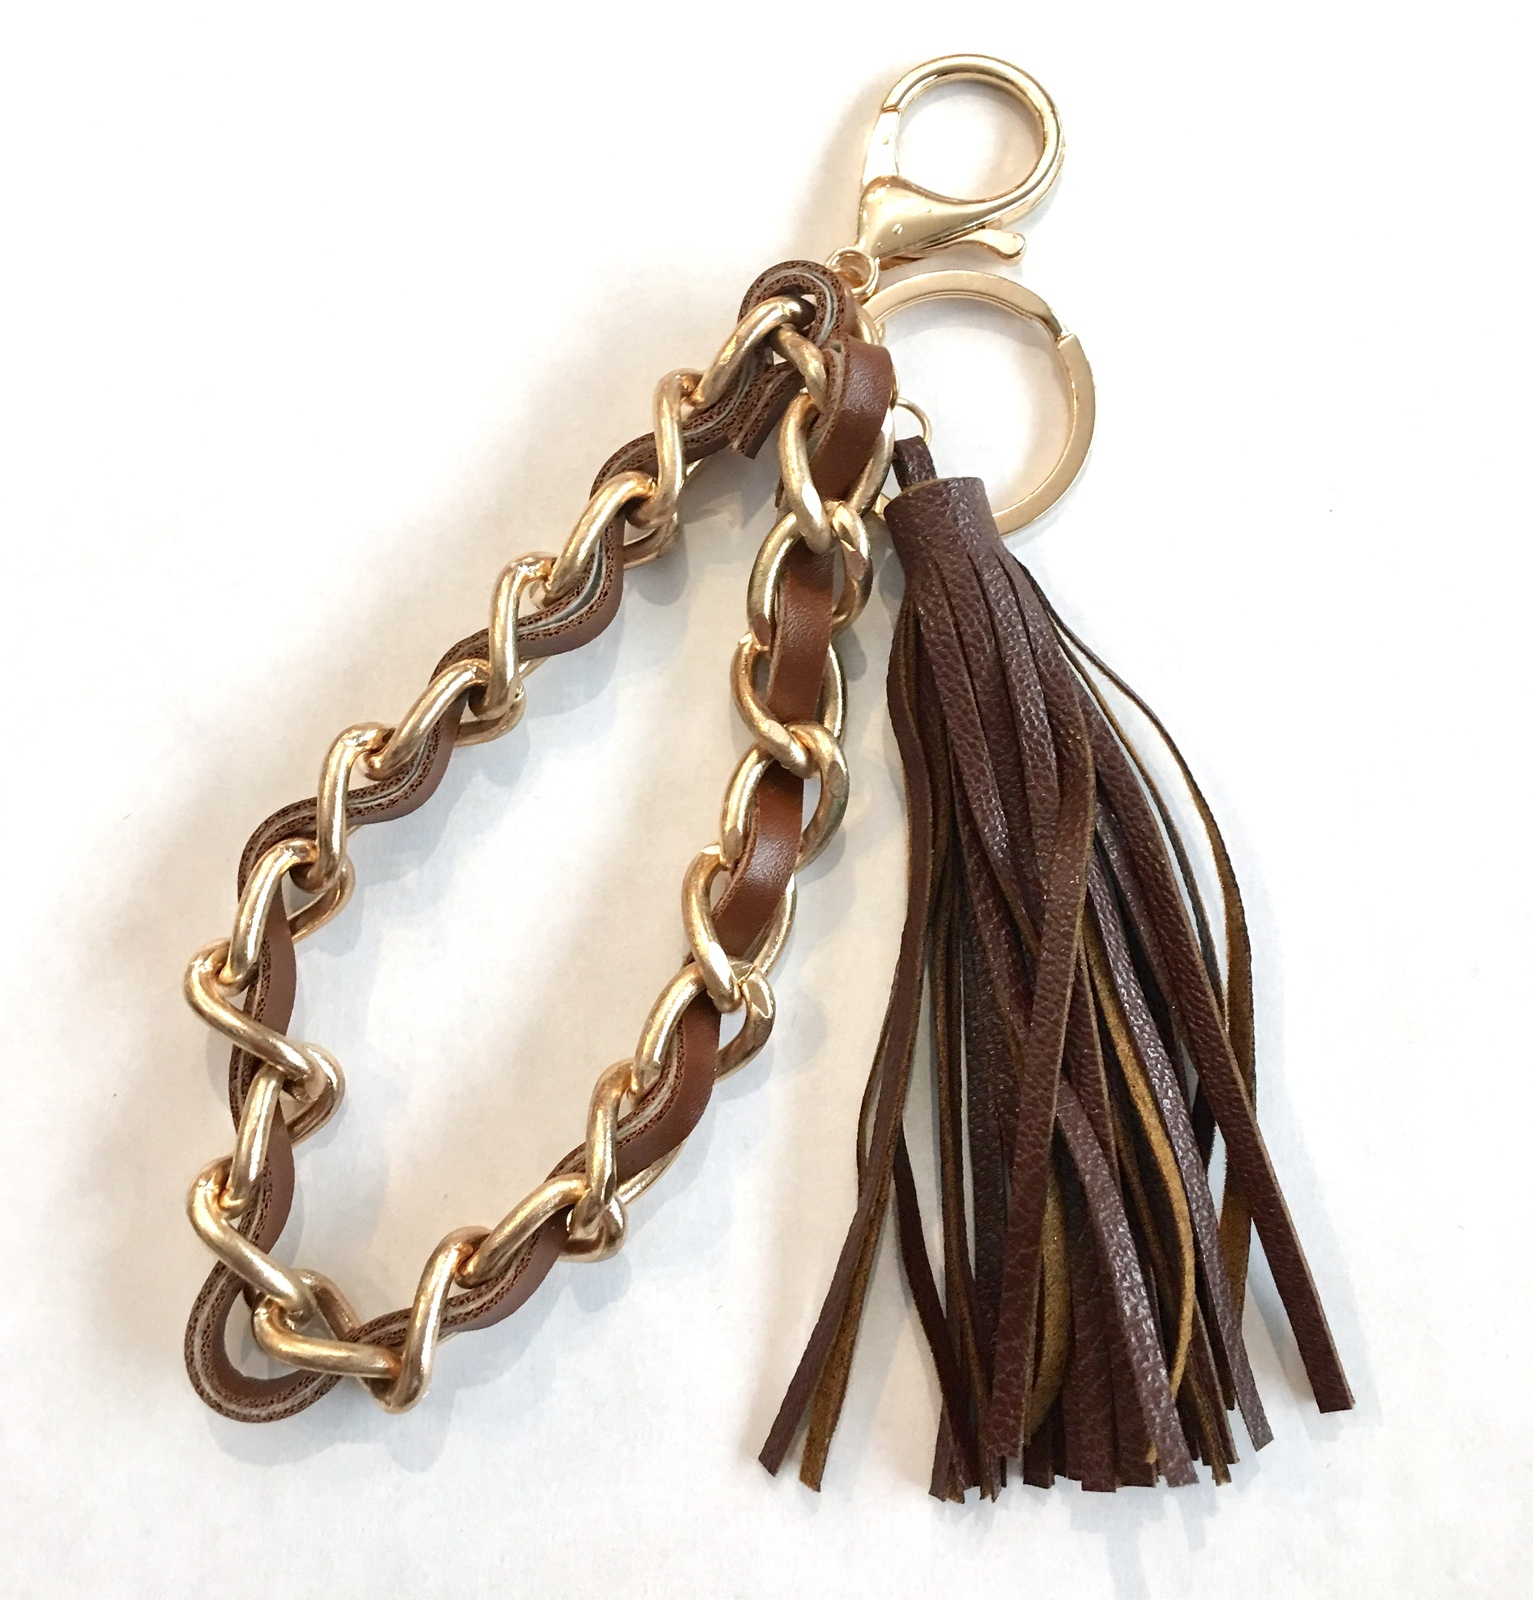 Leather Tassel Keychain, Gold Key Chain Wristlet, Brown Faux Leather Tassel